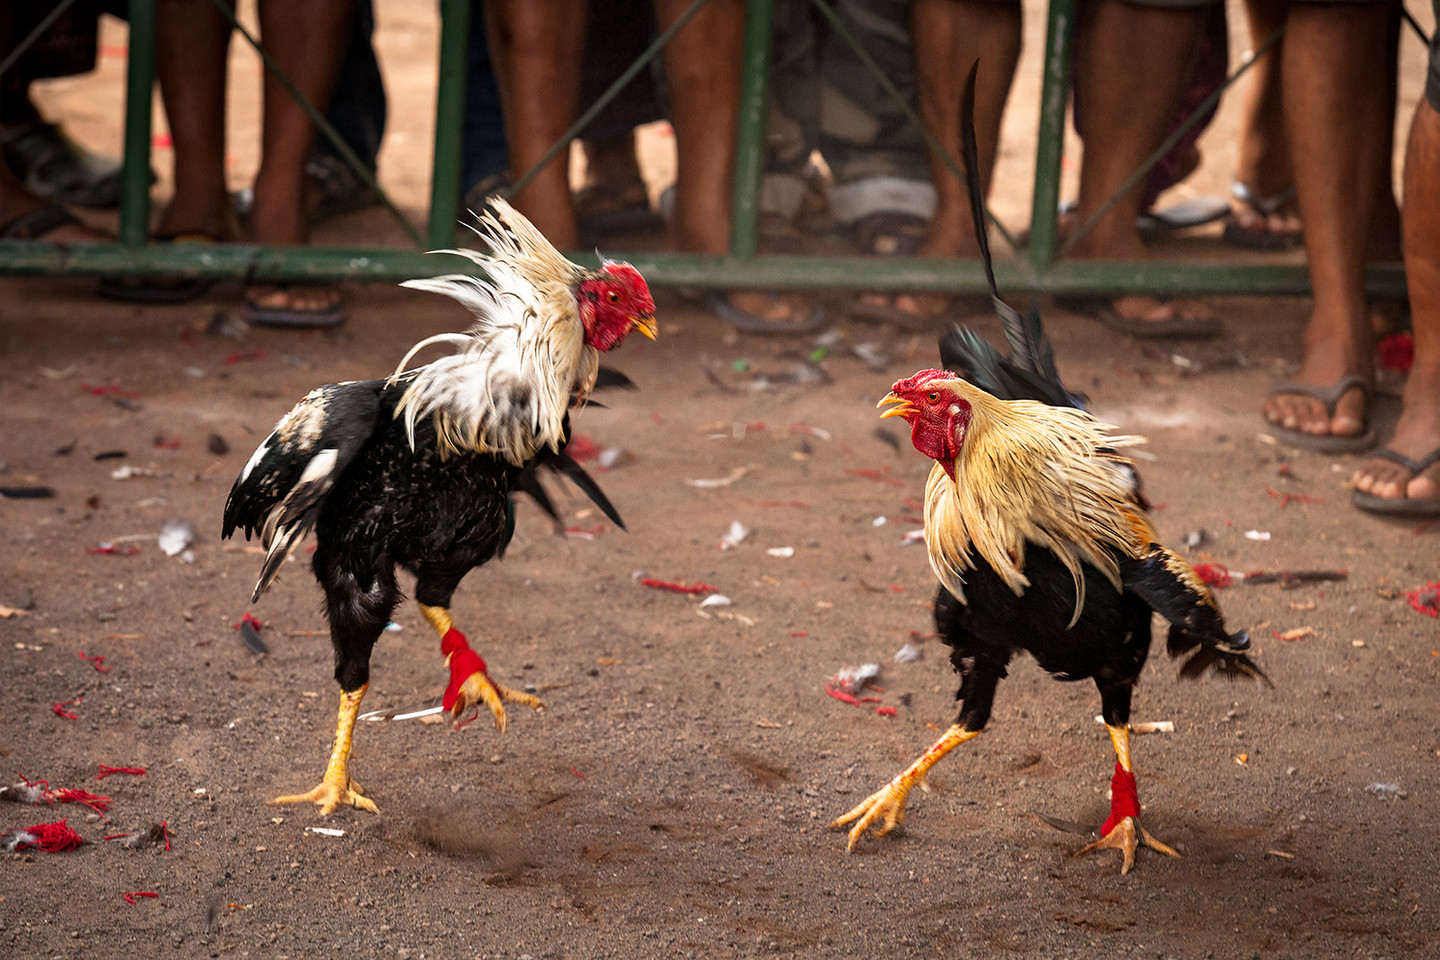 ROOSTERS IN THE ARENA